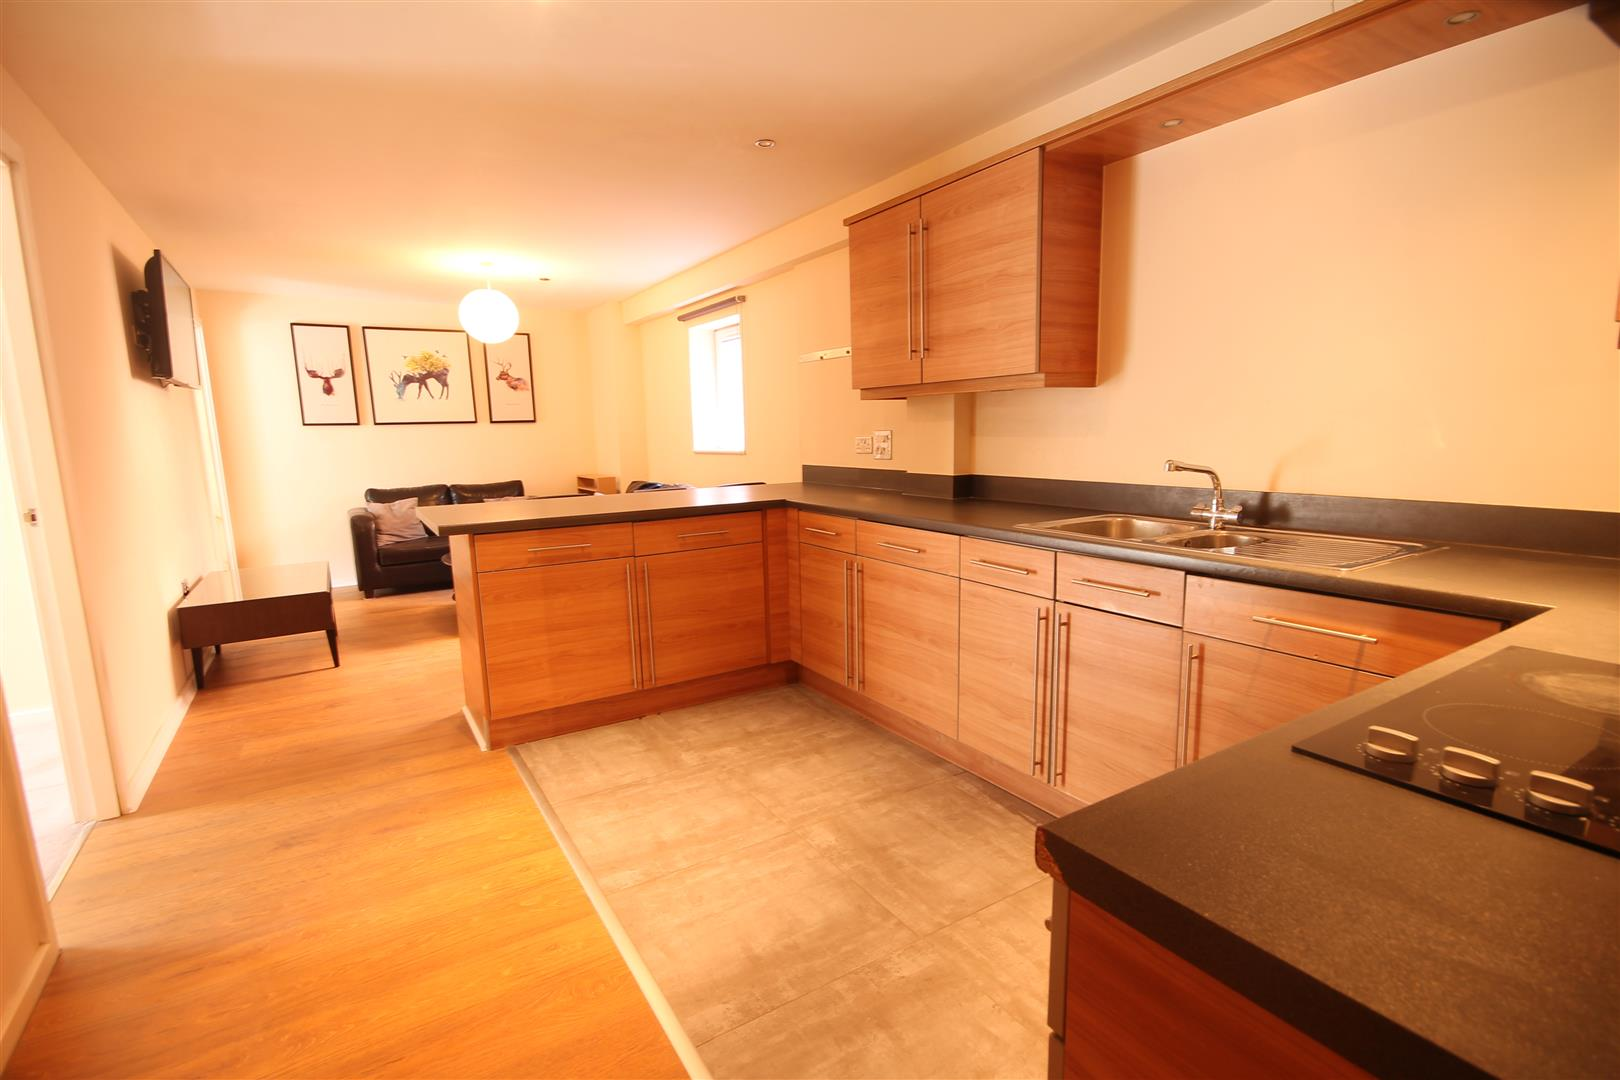 Rialto Building Newcastle Upon Tyne, 5 Bedrooms  Apartment ,To Let